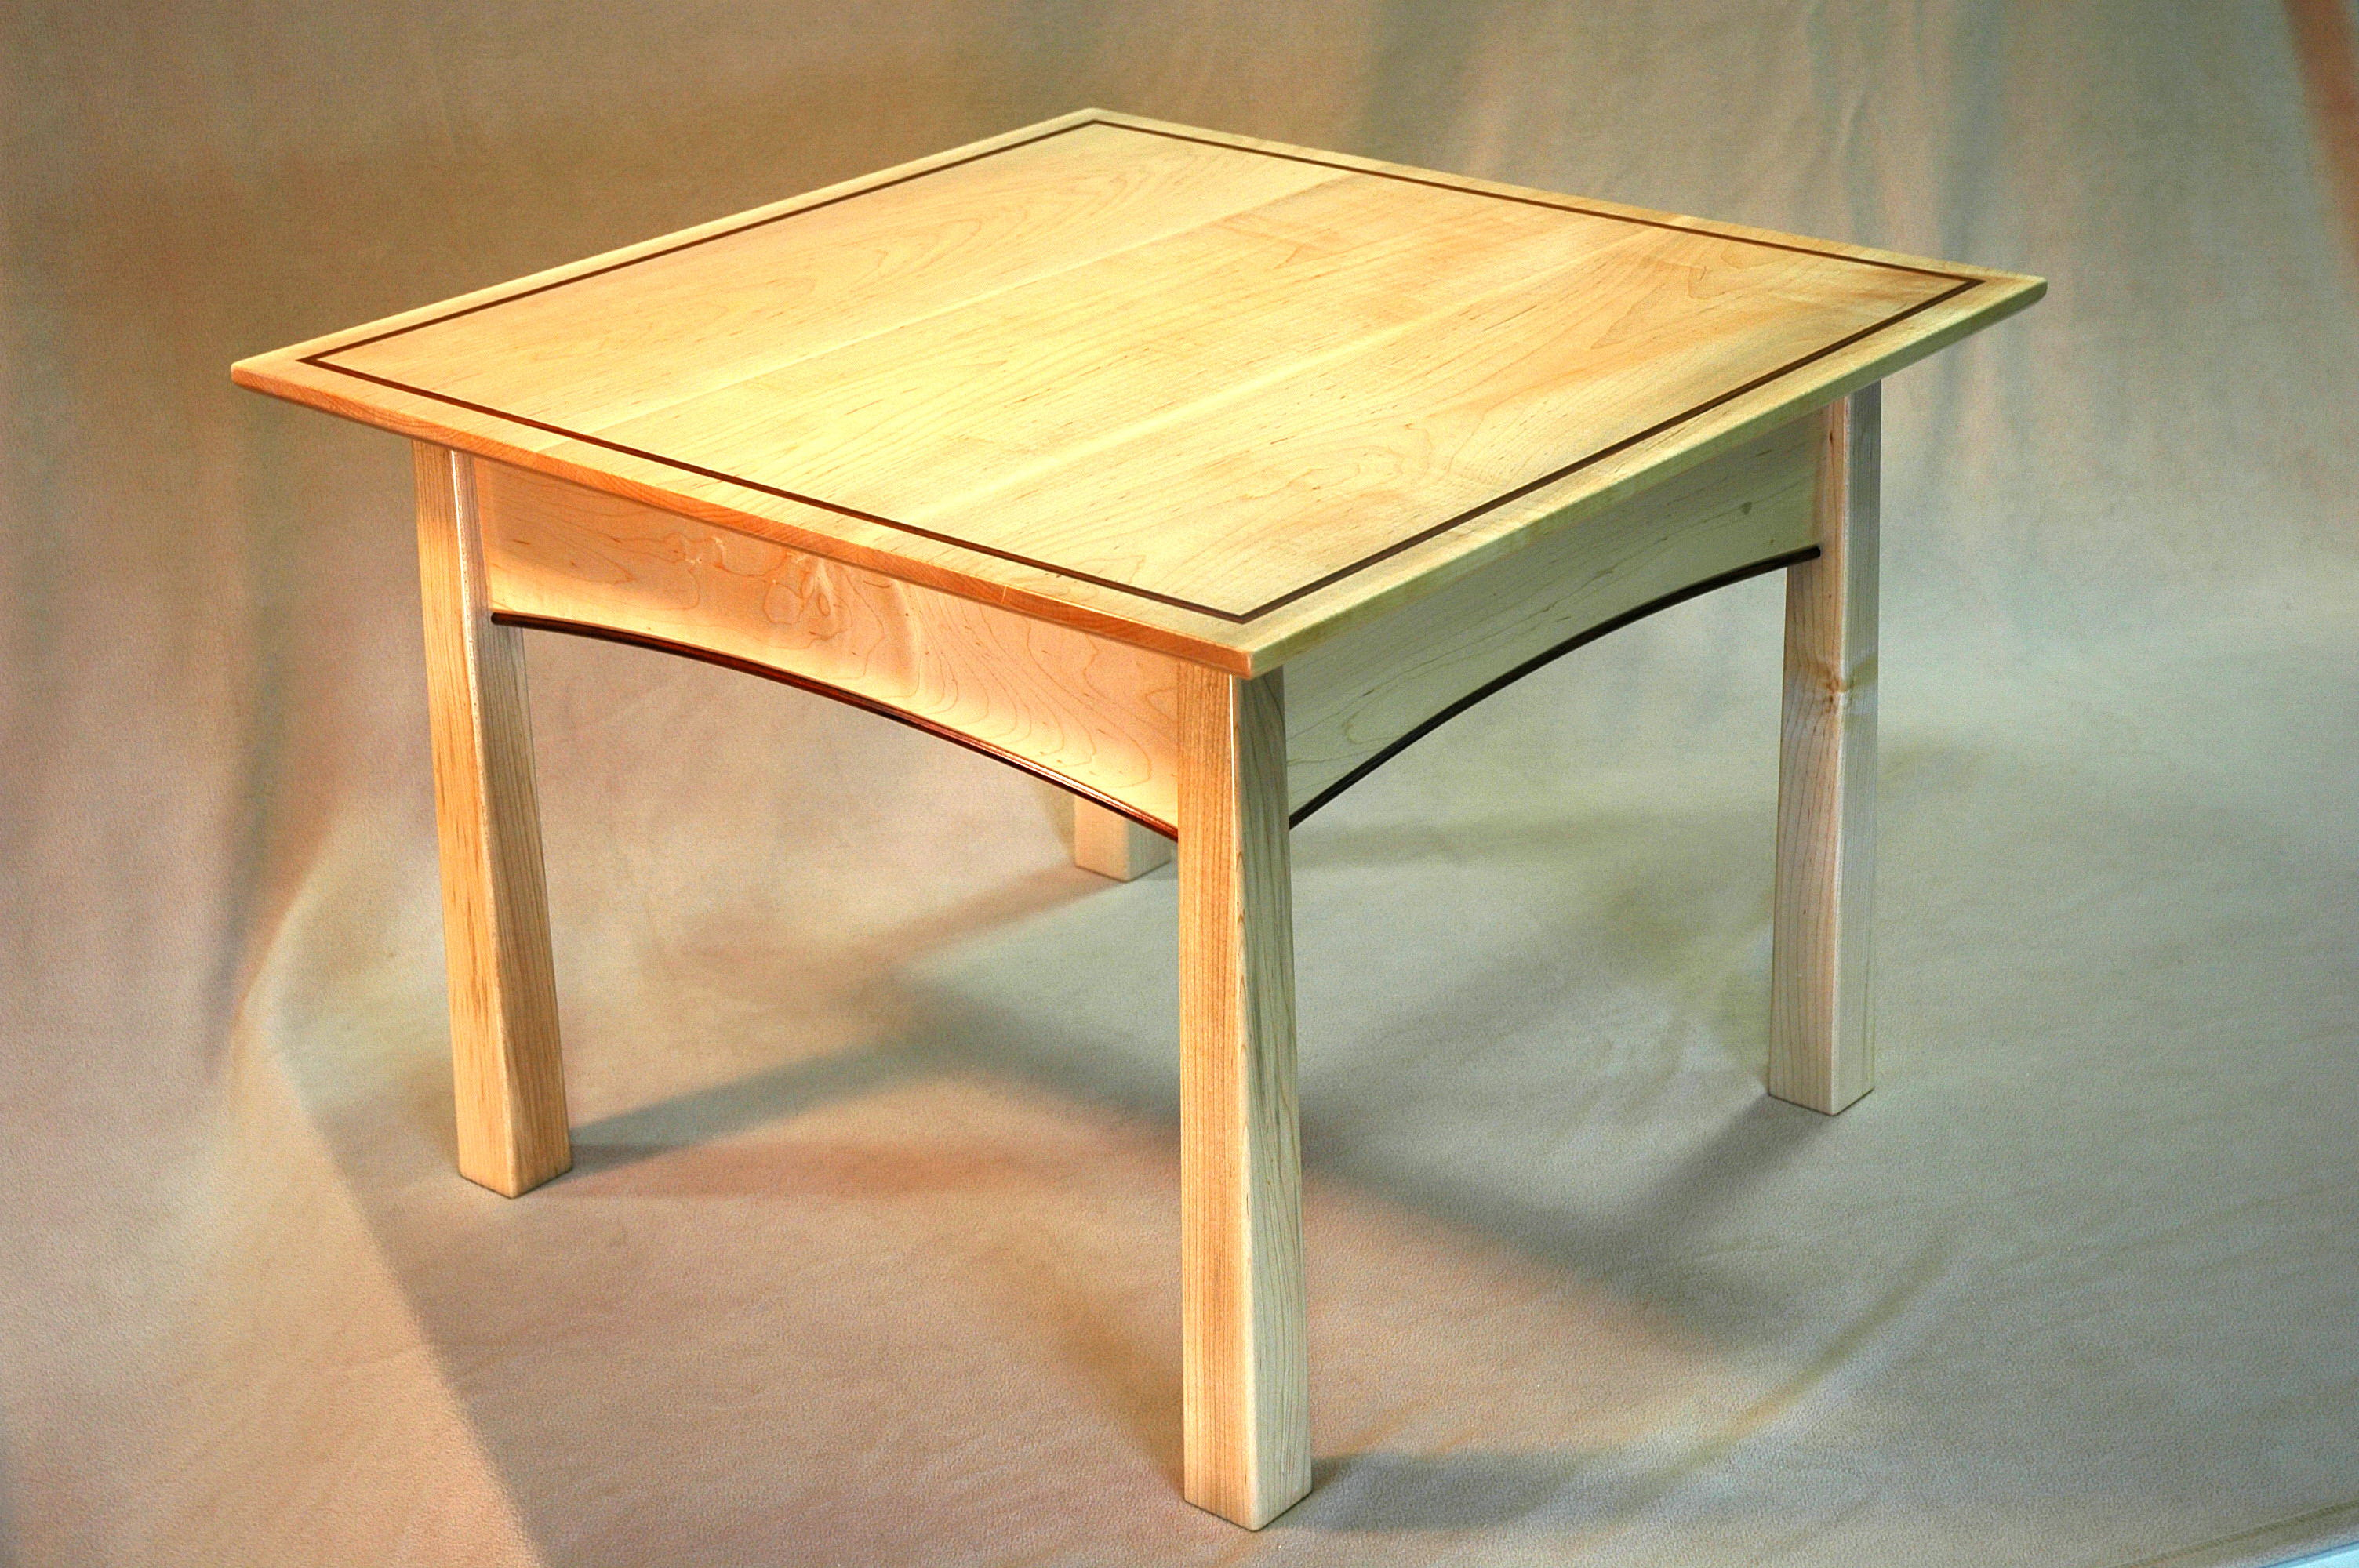 Perfume Table Combination Island And Dining Table ❱